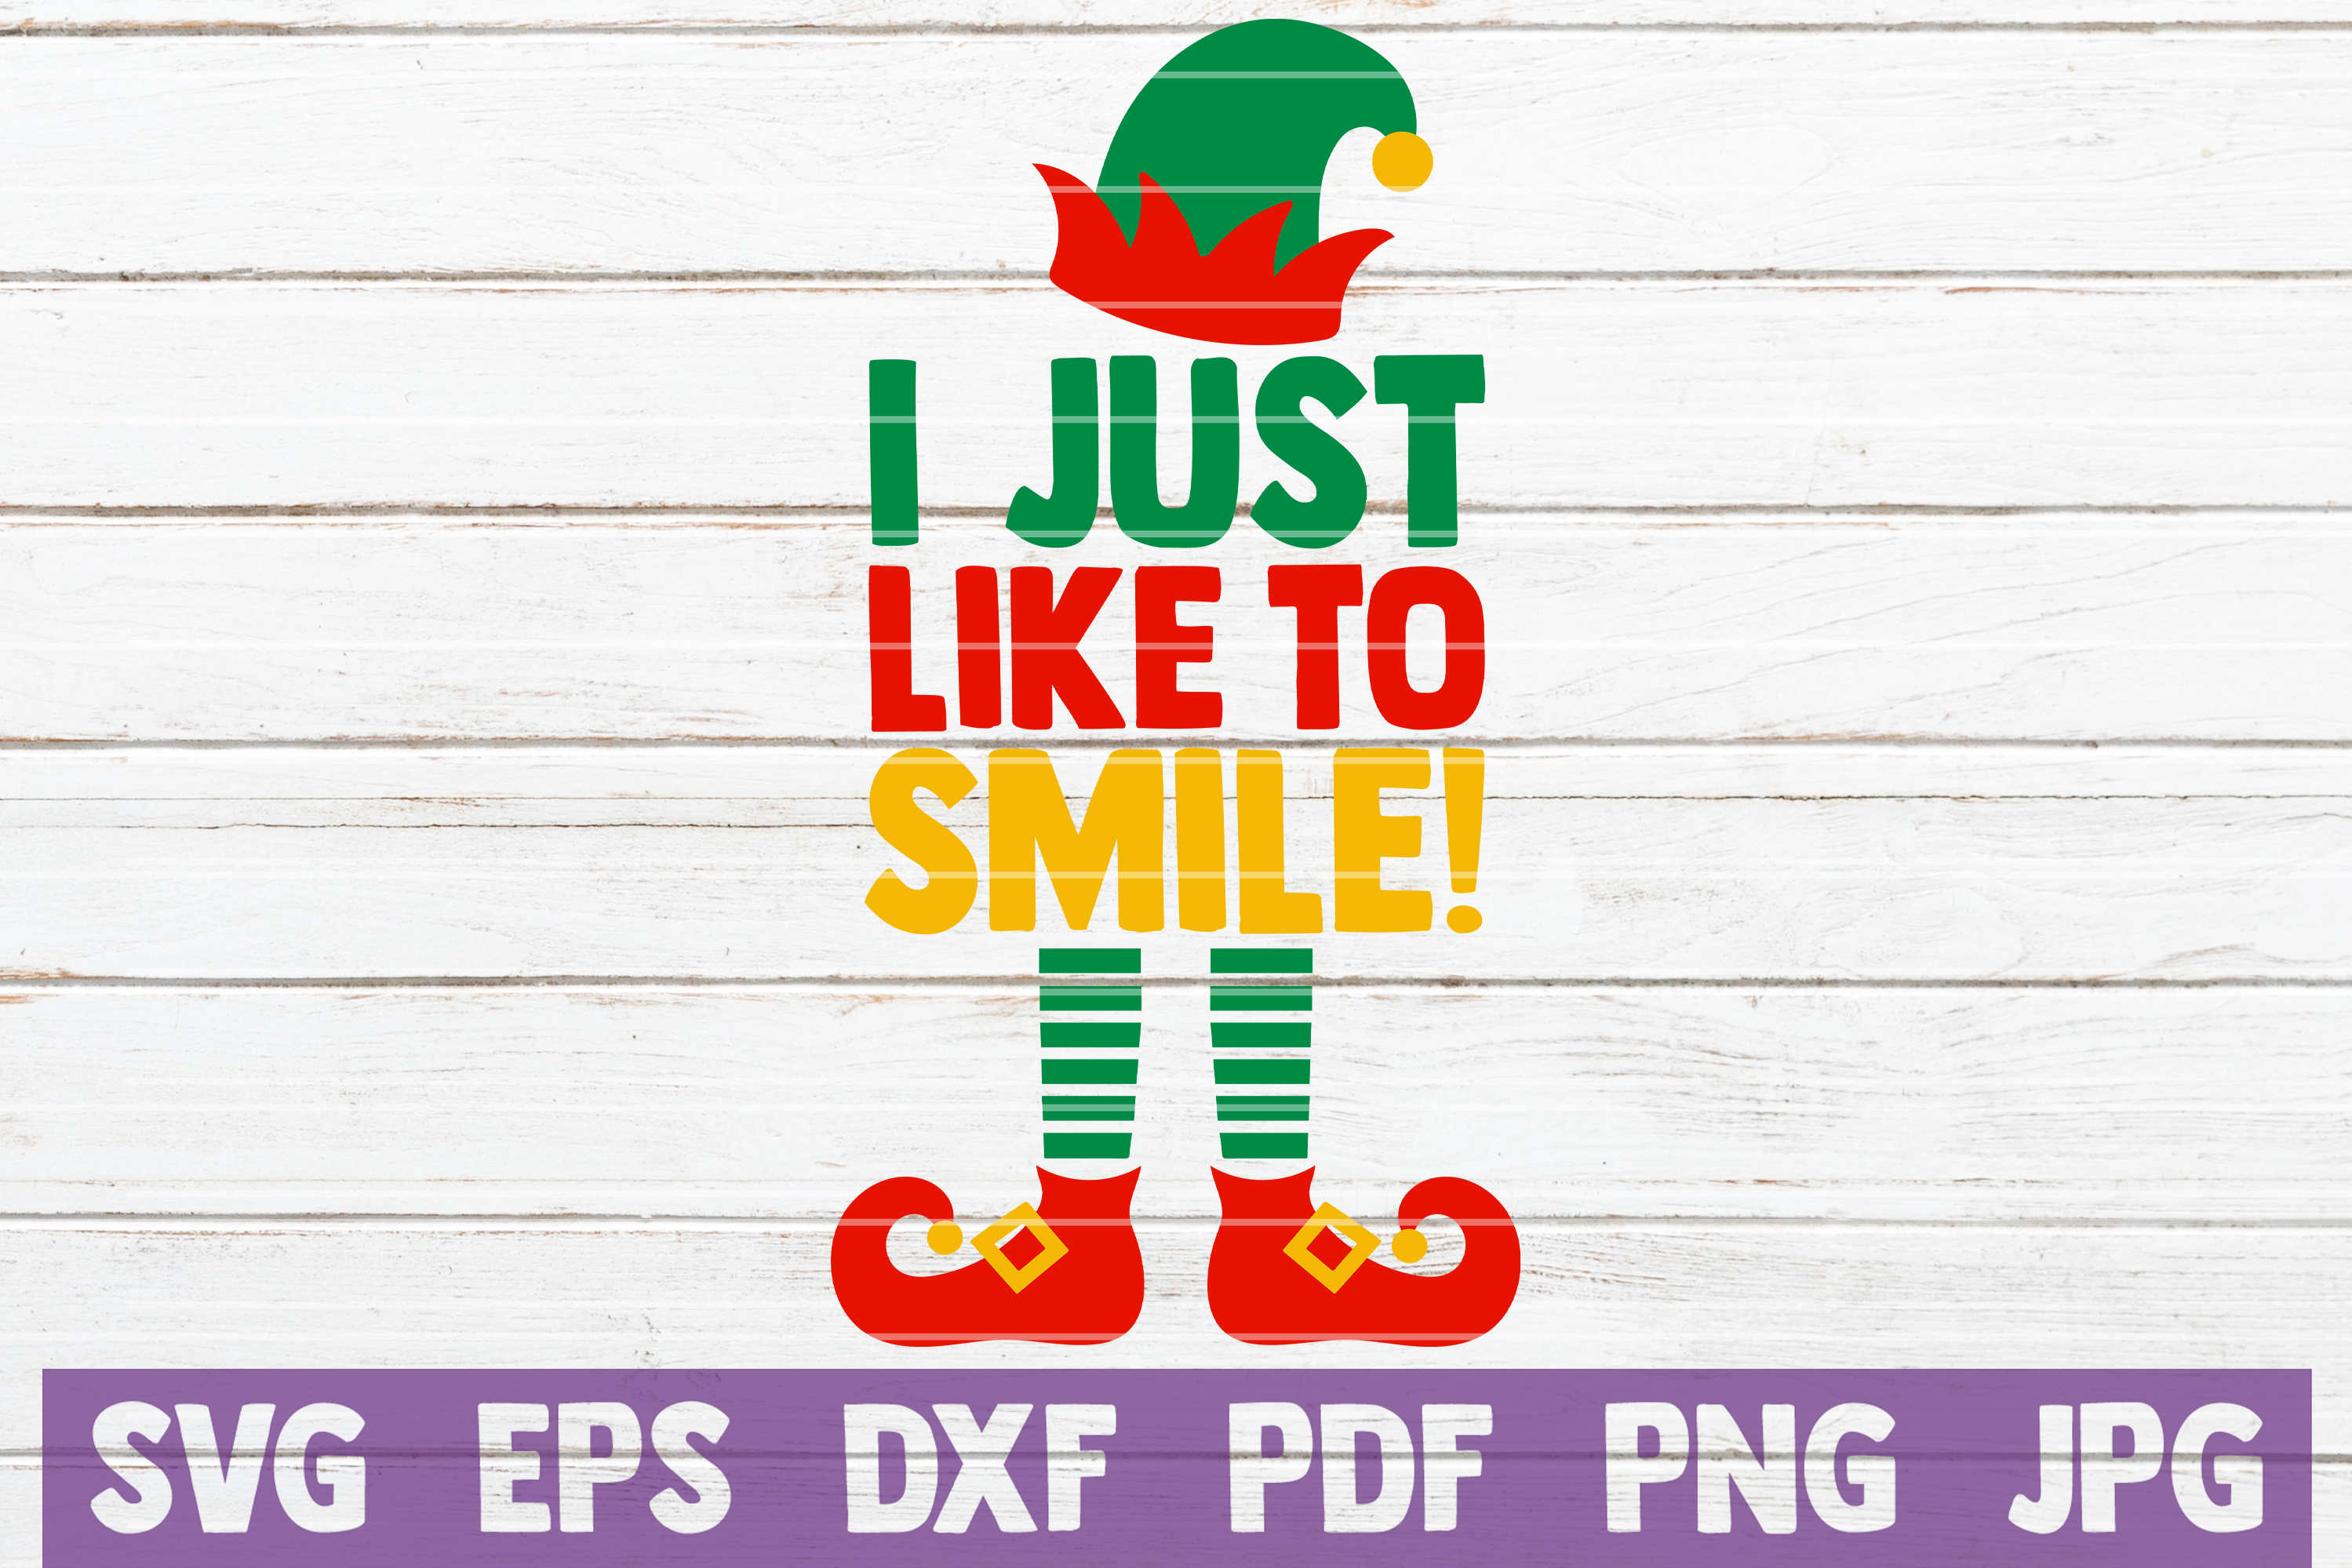 I Just Like To Smile! SVG Cut File example image 1